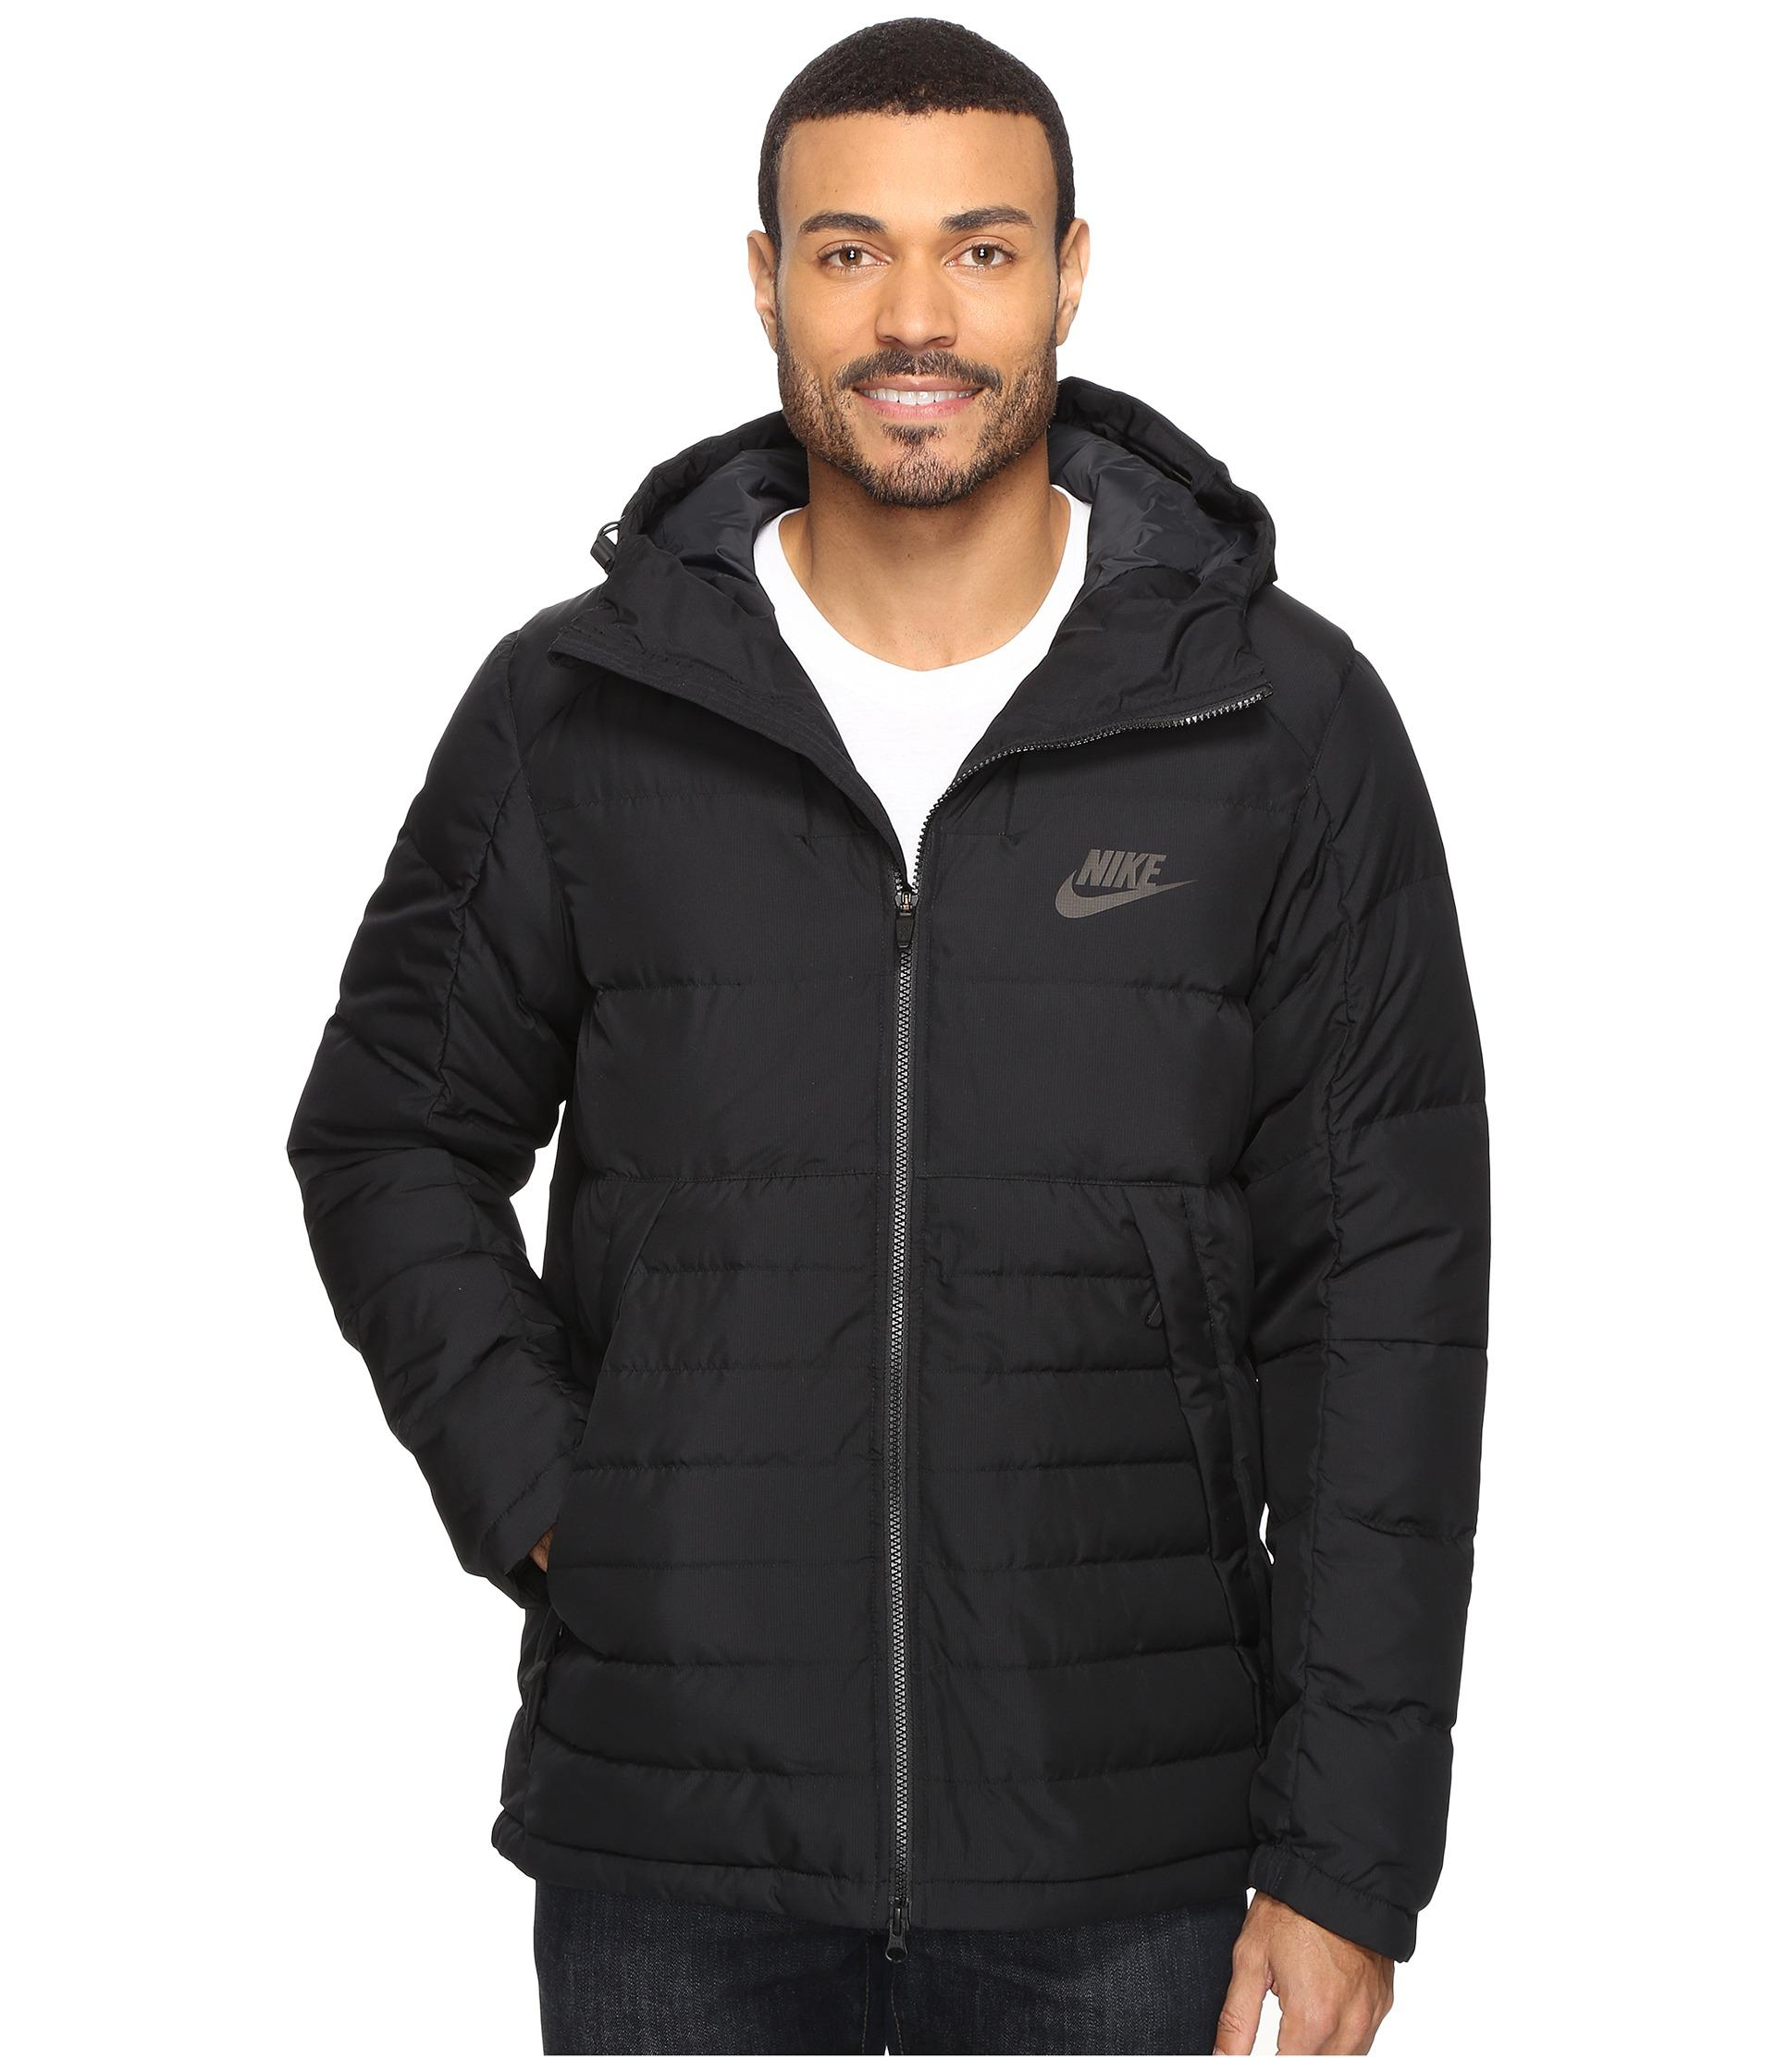 7e66fc74c2a0 Lyst - Nike Nsw Down Fill Hooded Jacket in Black for Men